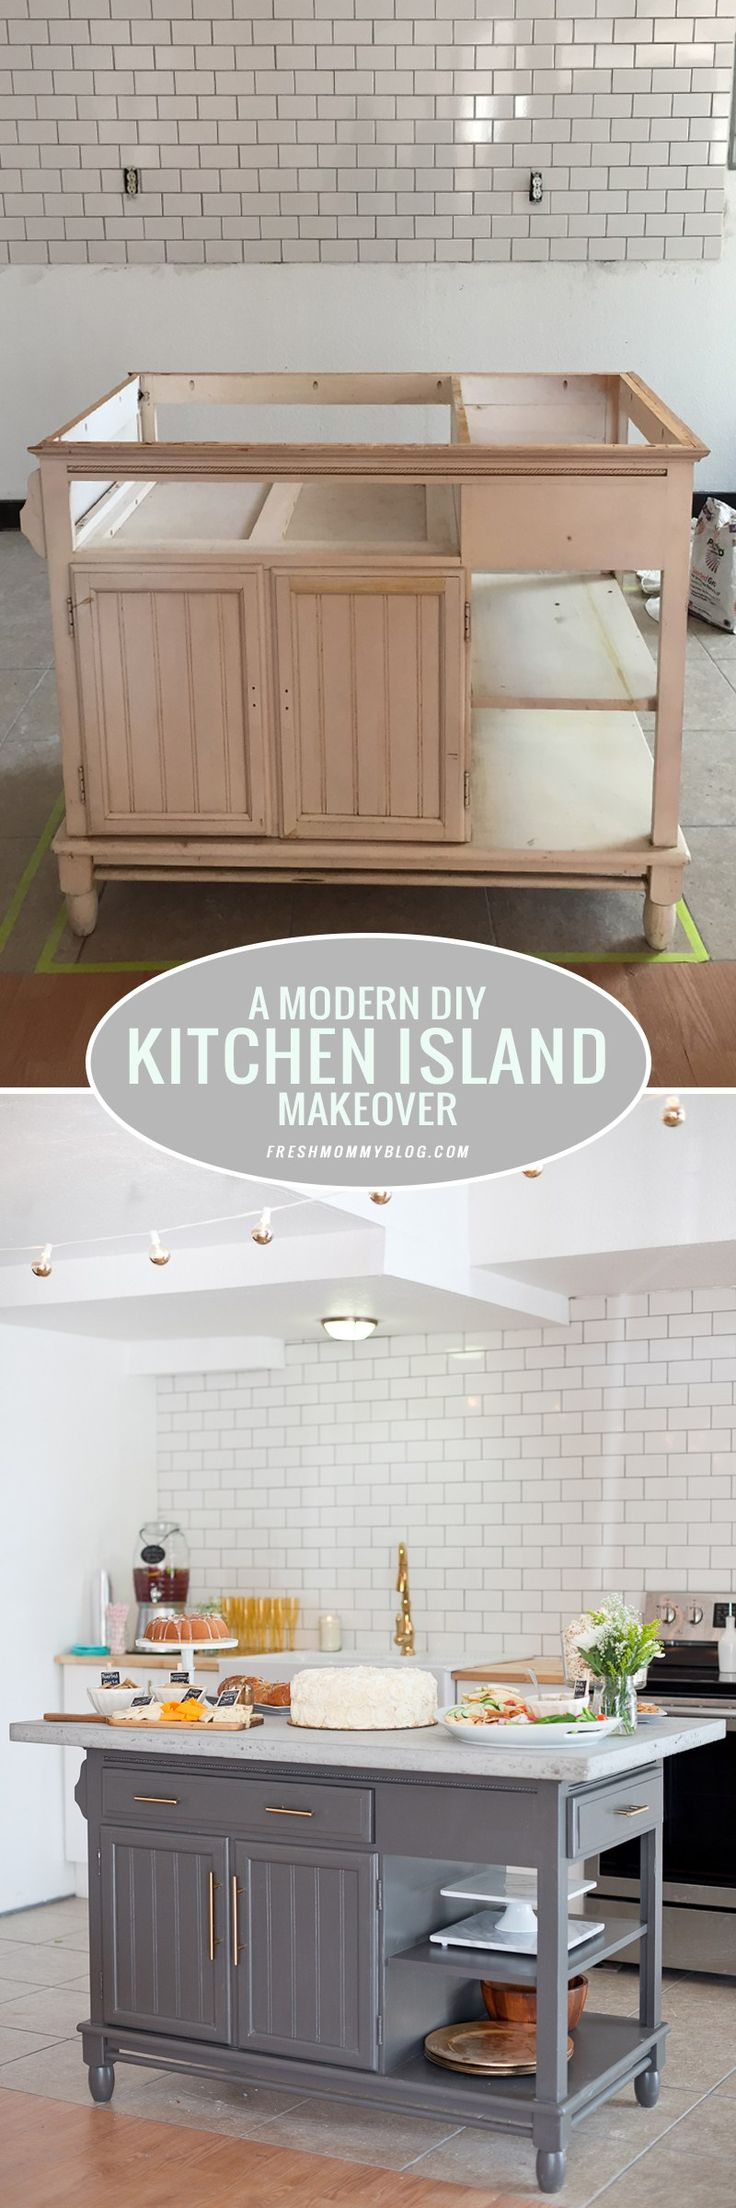 Kitchen Remodel Ideas With Islands 60 kitchen island ideas and designs freshomecom 25 Best Kitchen Island Makeover Ideas On Pinterest Peninsula Kitchen Diy Painting Cabinets And Country Kitchen